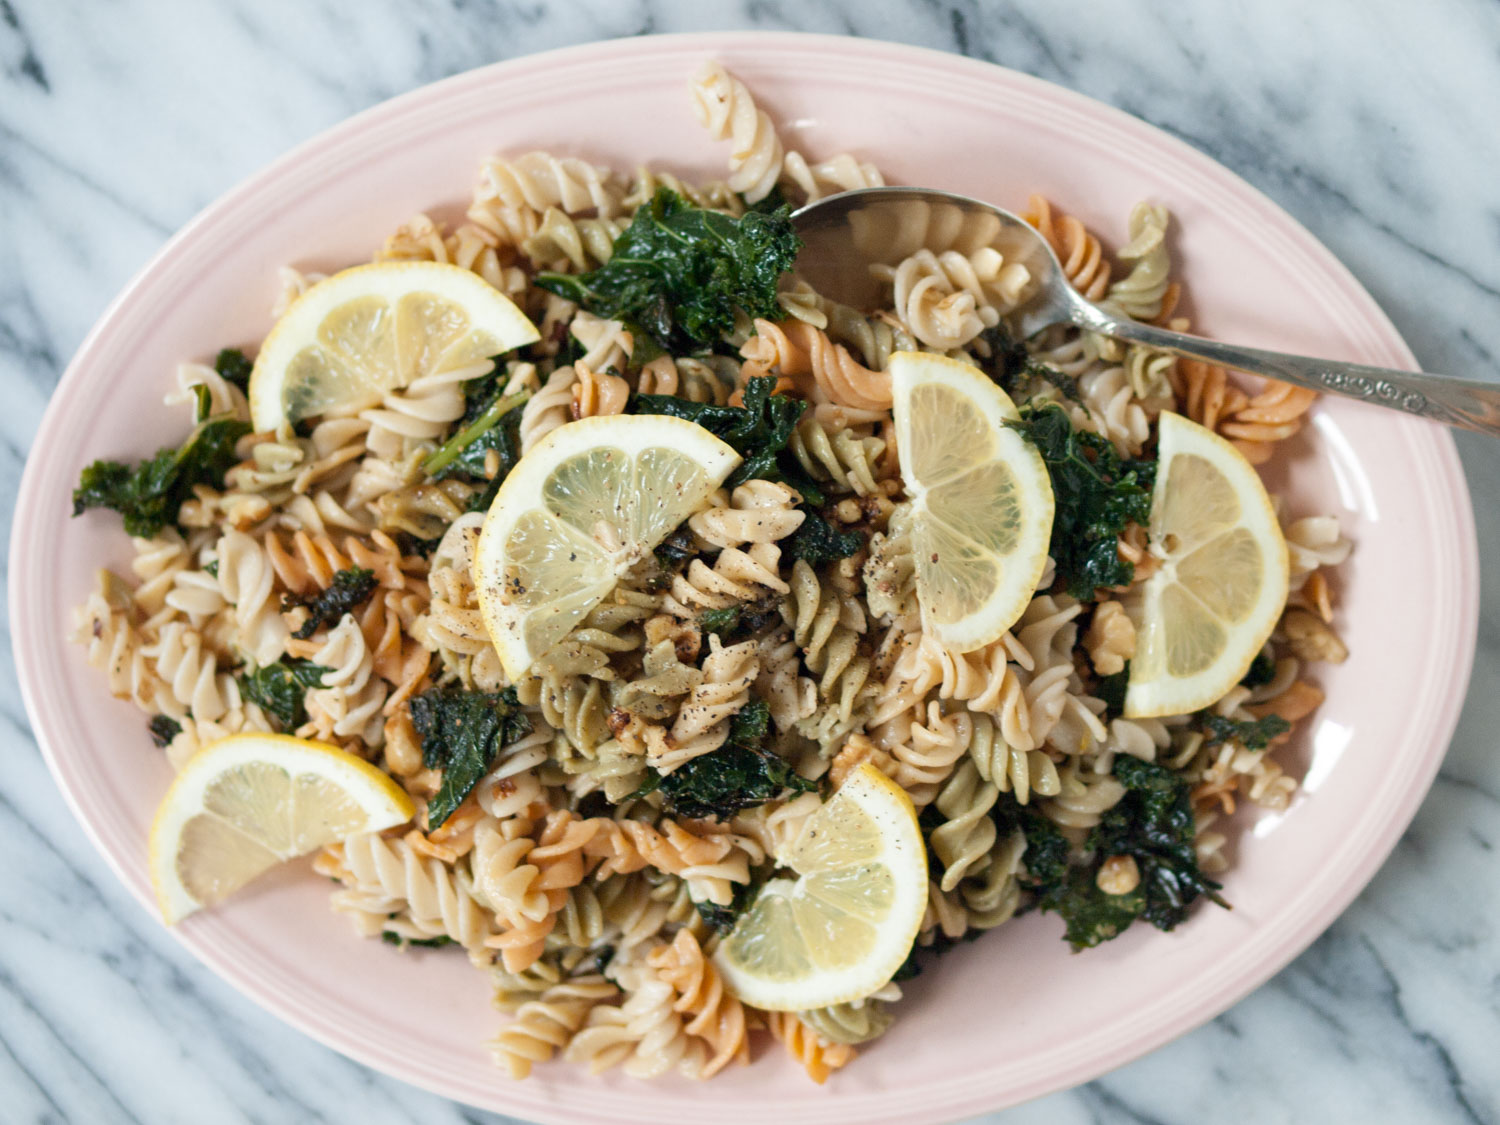 lemony pasta with kale and walnuts